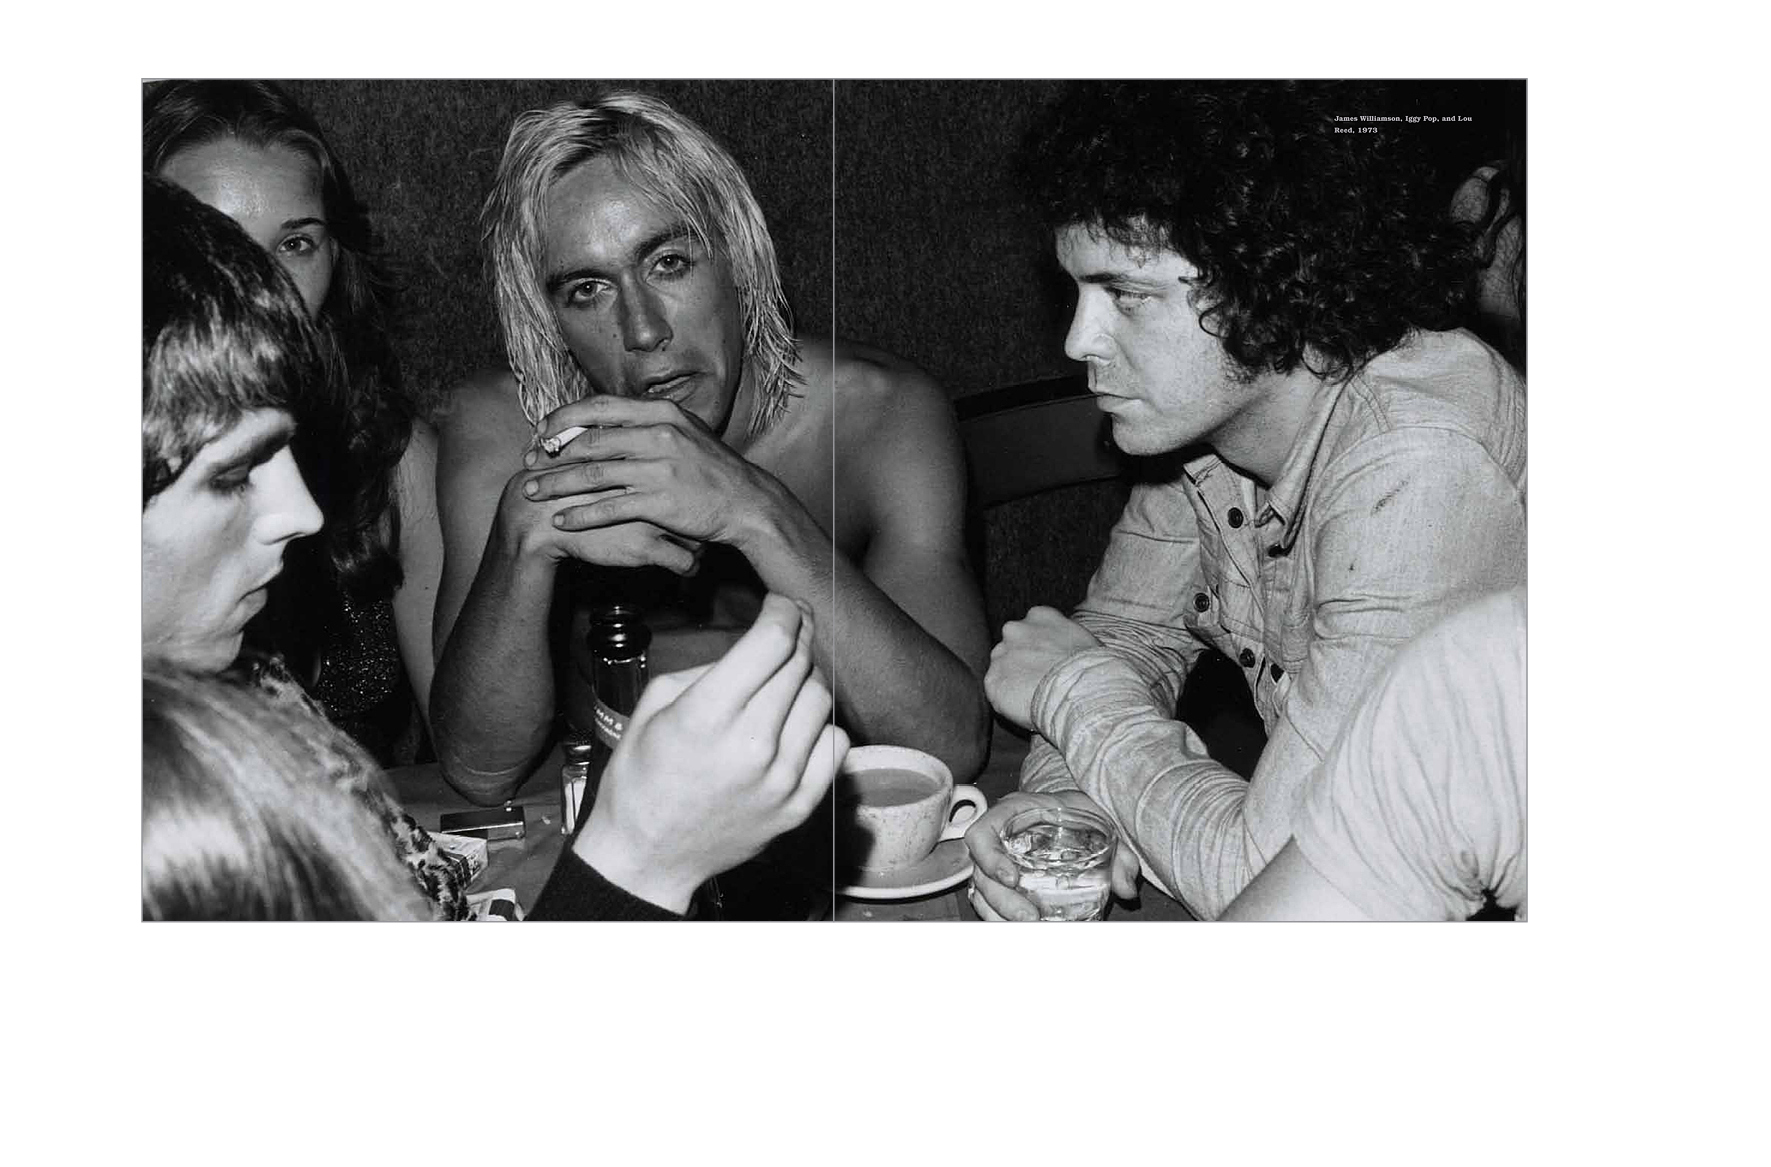 Typical spread -  Two-page image, Iggy Pop and Lou Reed